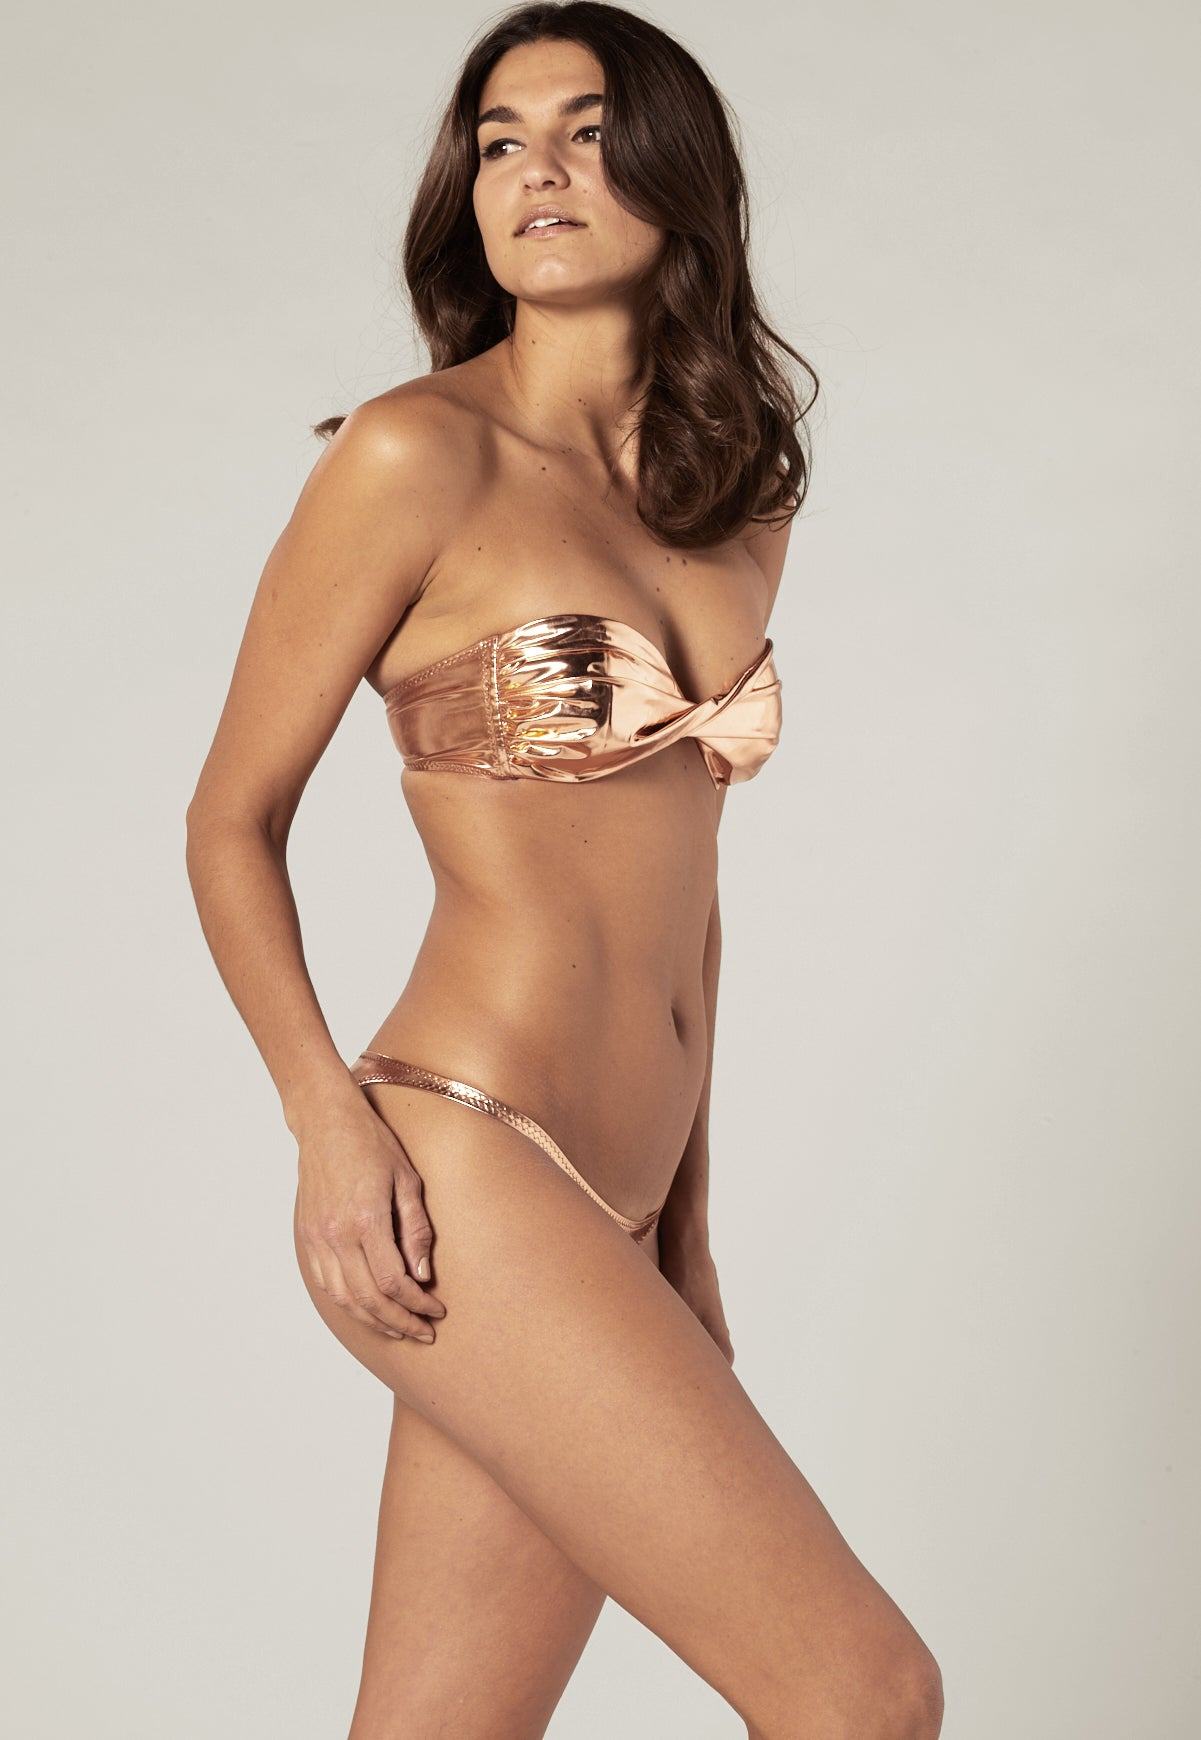 ALEXIA ROSE GOLD METALLIC PVC BIKINI